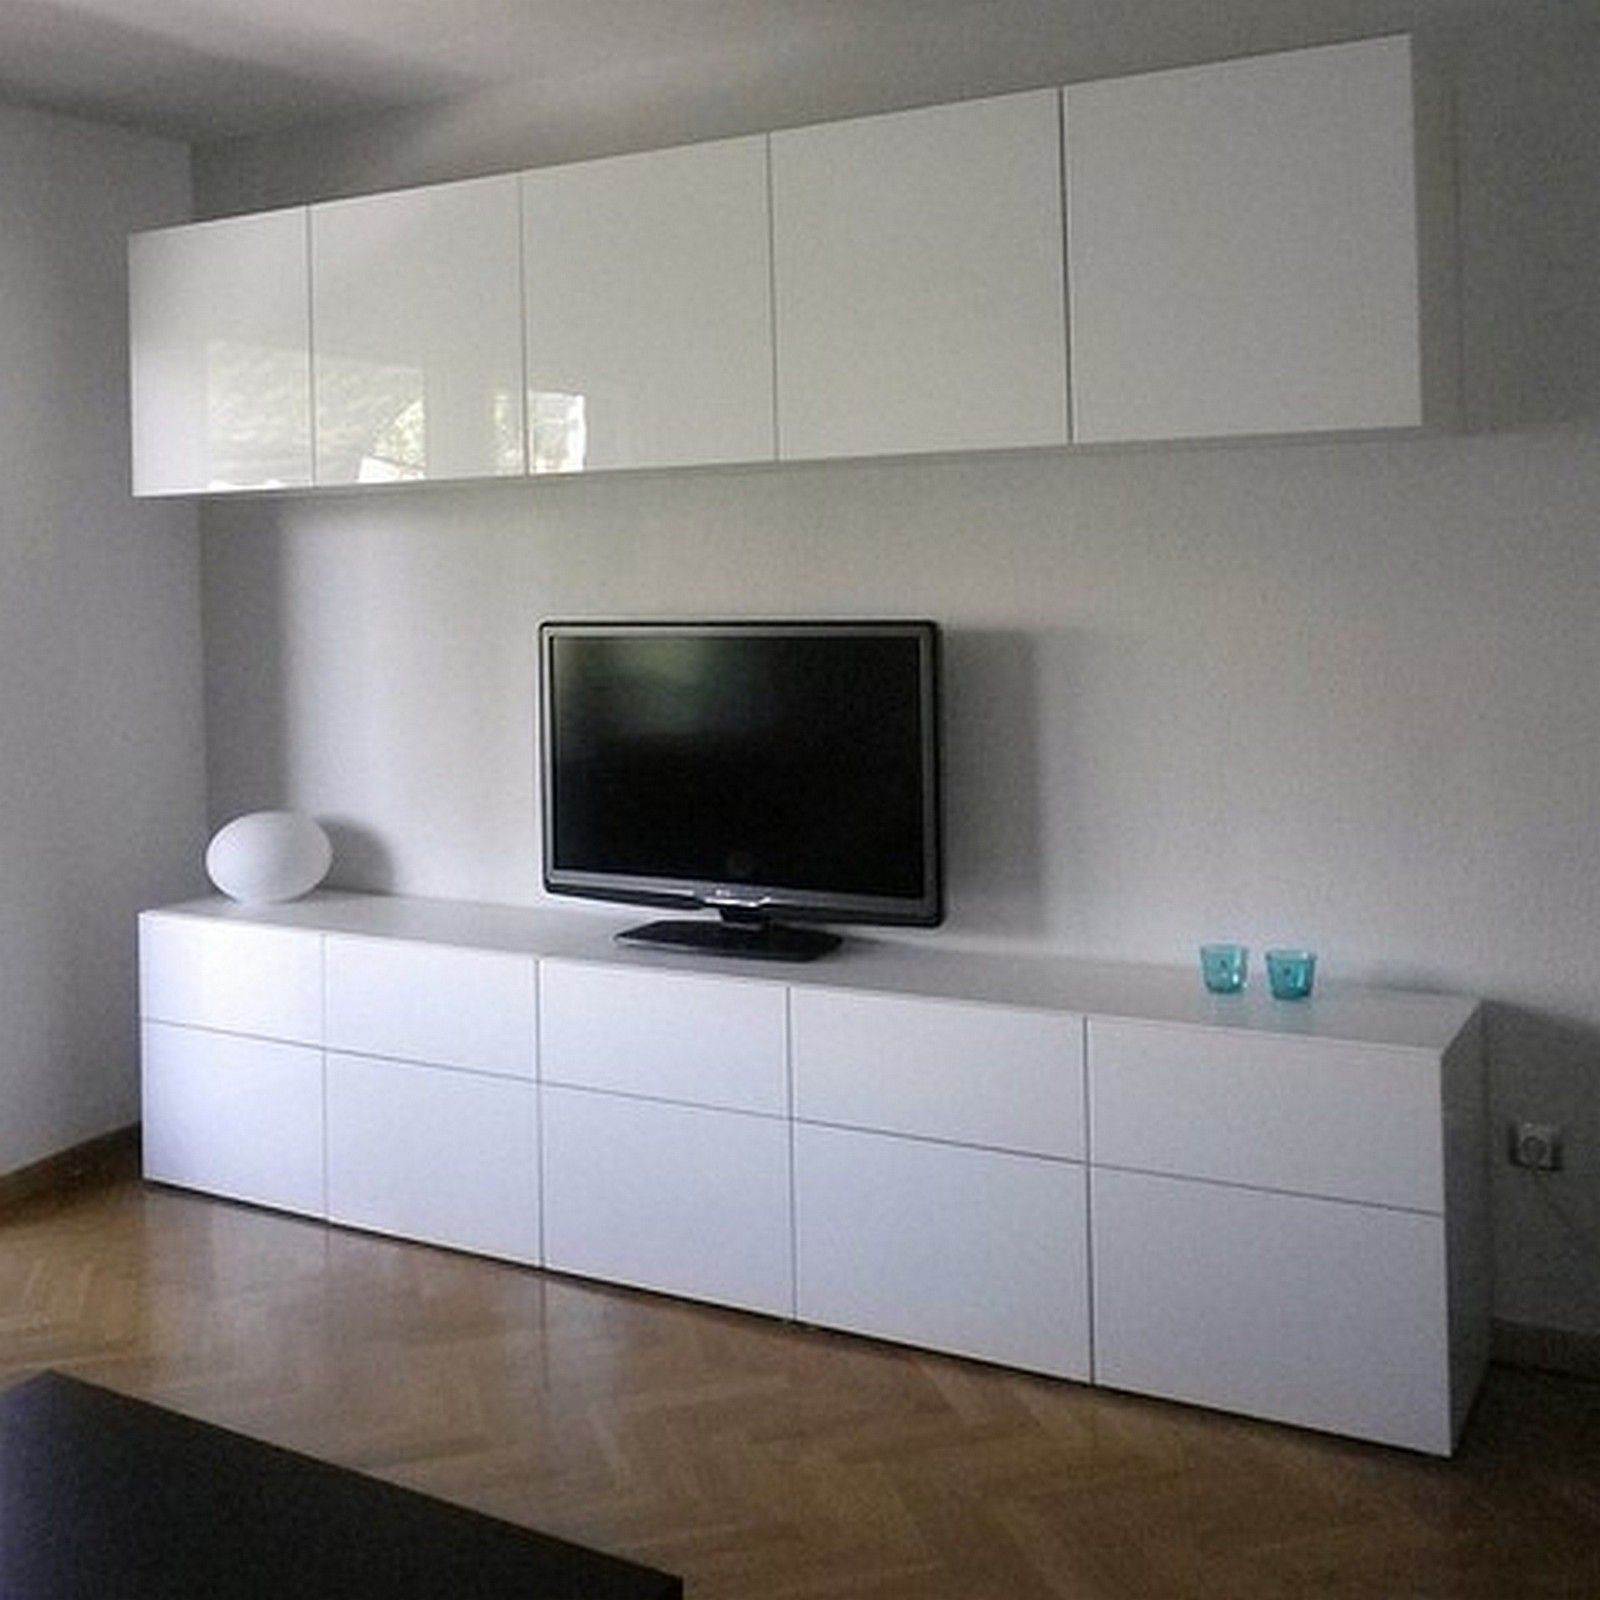 Ordinaire Ikea Besta Cabinets With High Gloss Doors In Living Room